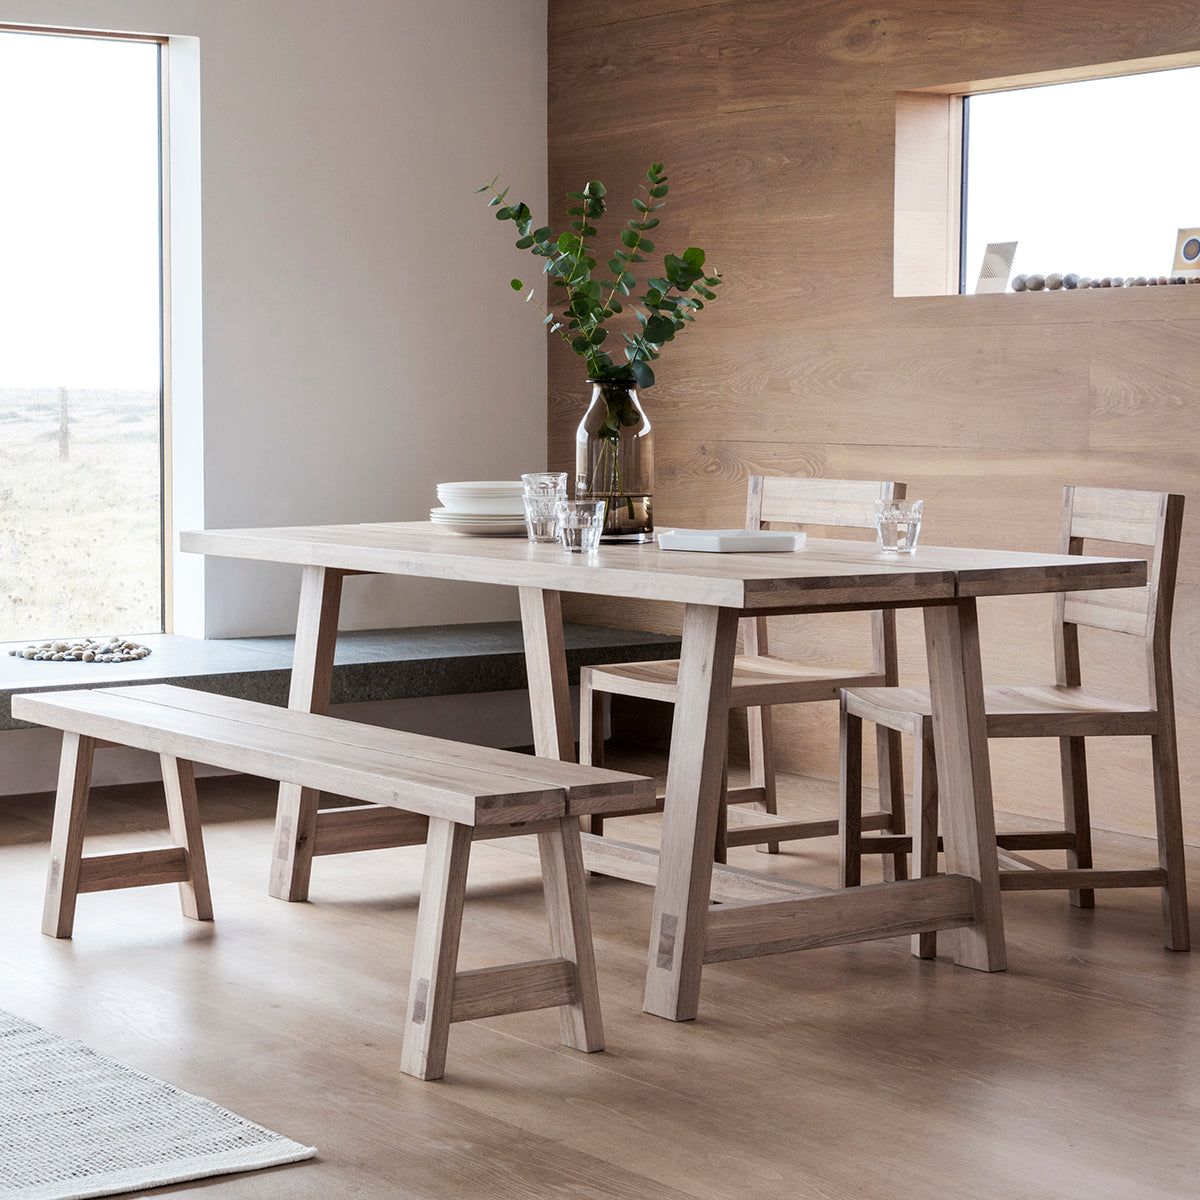 Hexham Large Dining Table - Ezzo